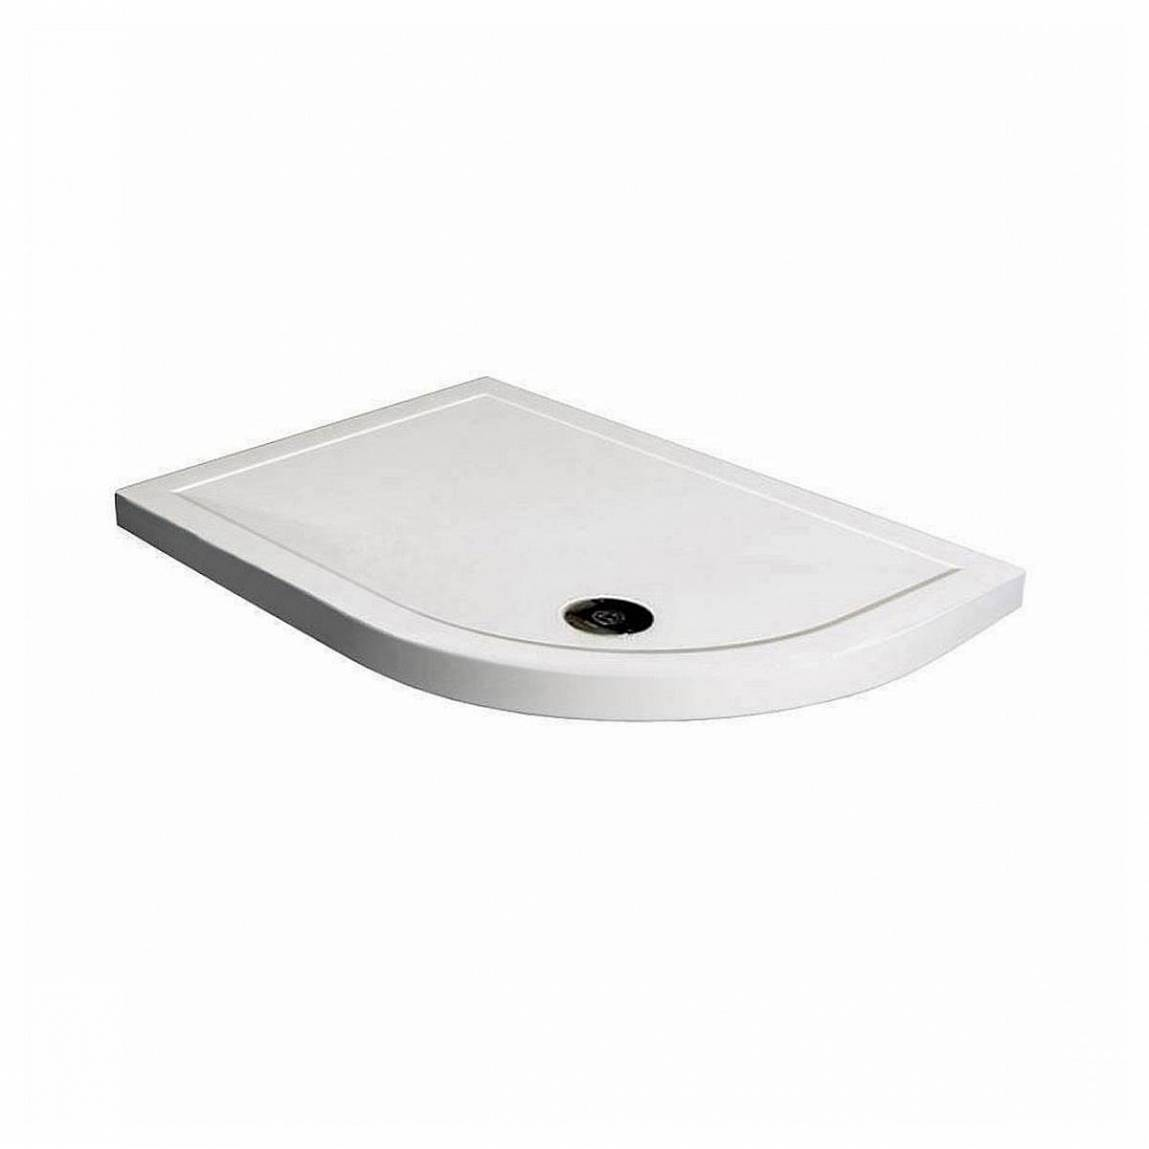 Image of Offset Quadrant Stone Shower Tray 1000 x 800 RH